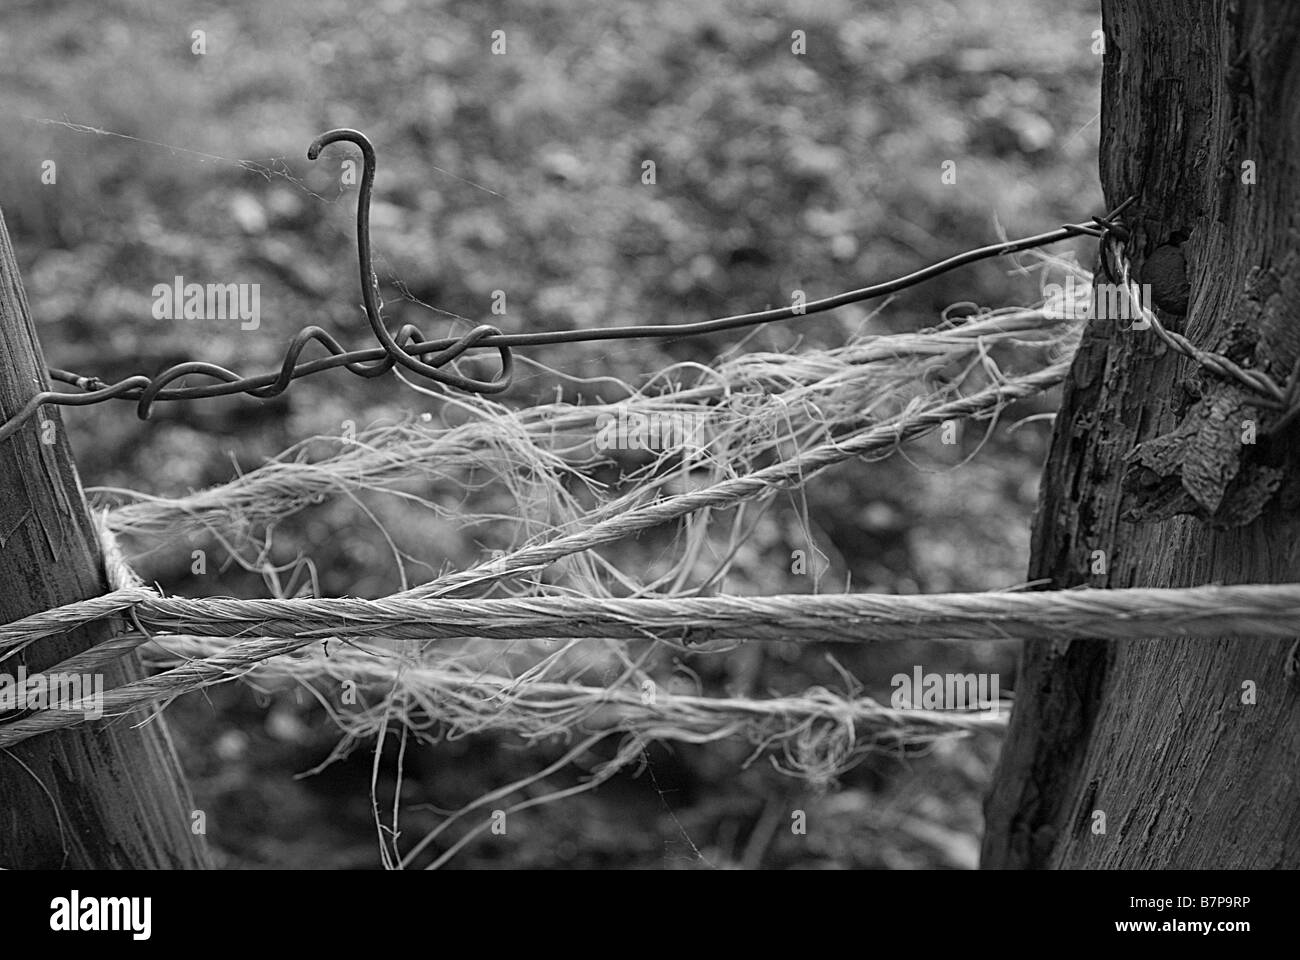 Close-up of a rope tied between to wooden poles - Stock Image